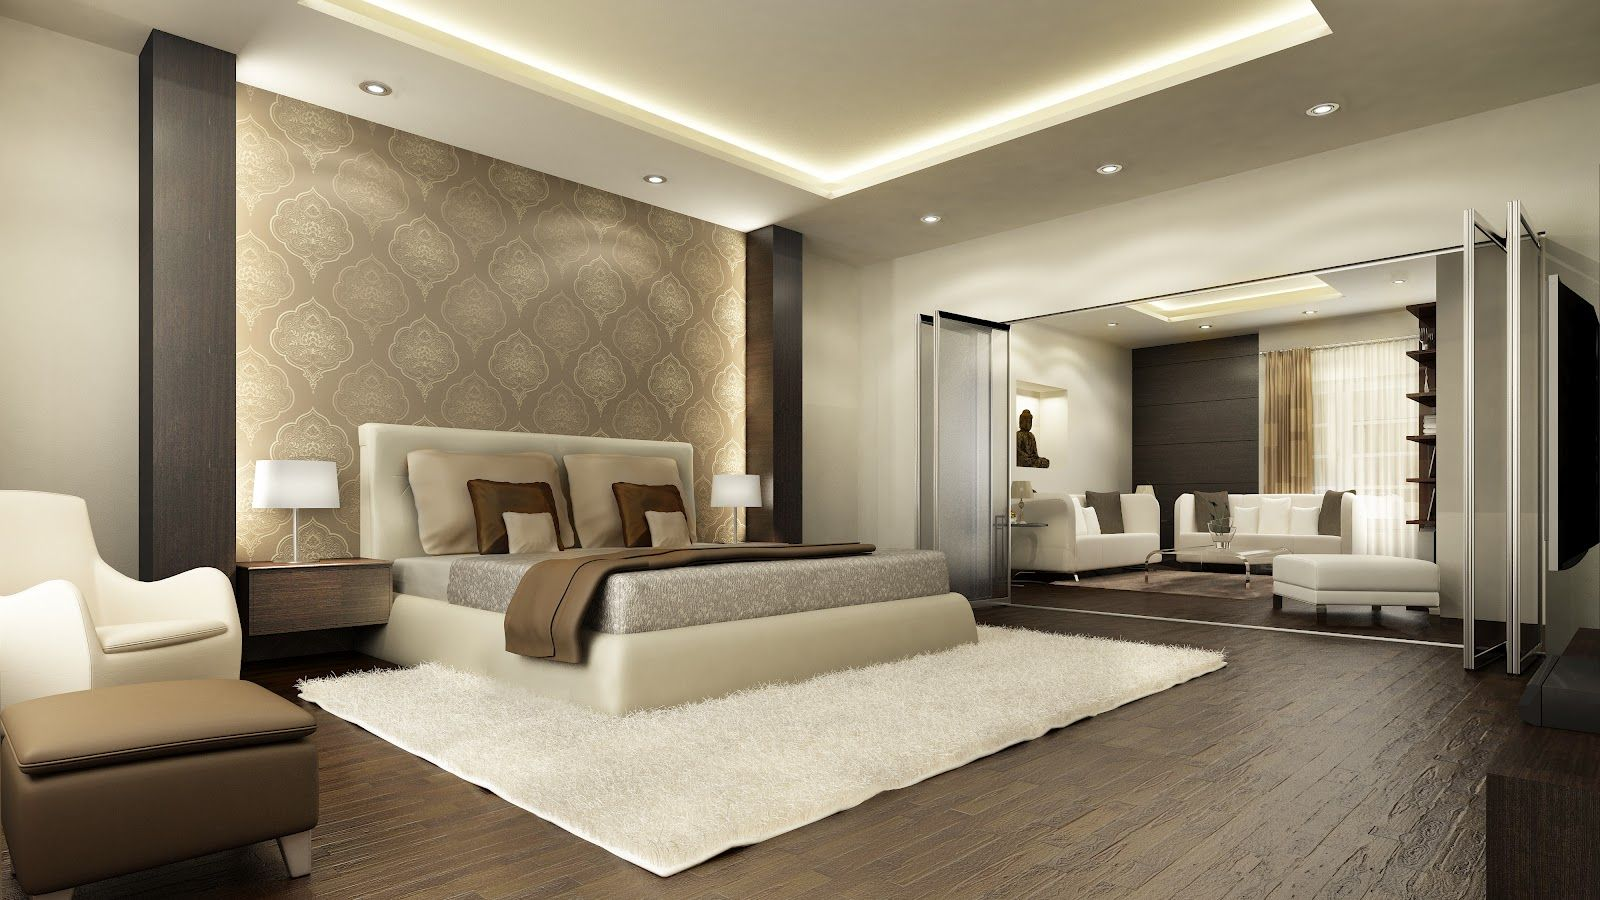 interior design bedroom ideas on a budget - Design Bedroom